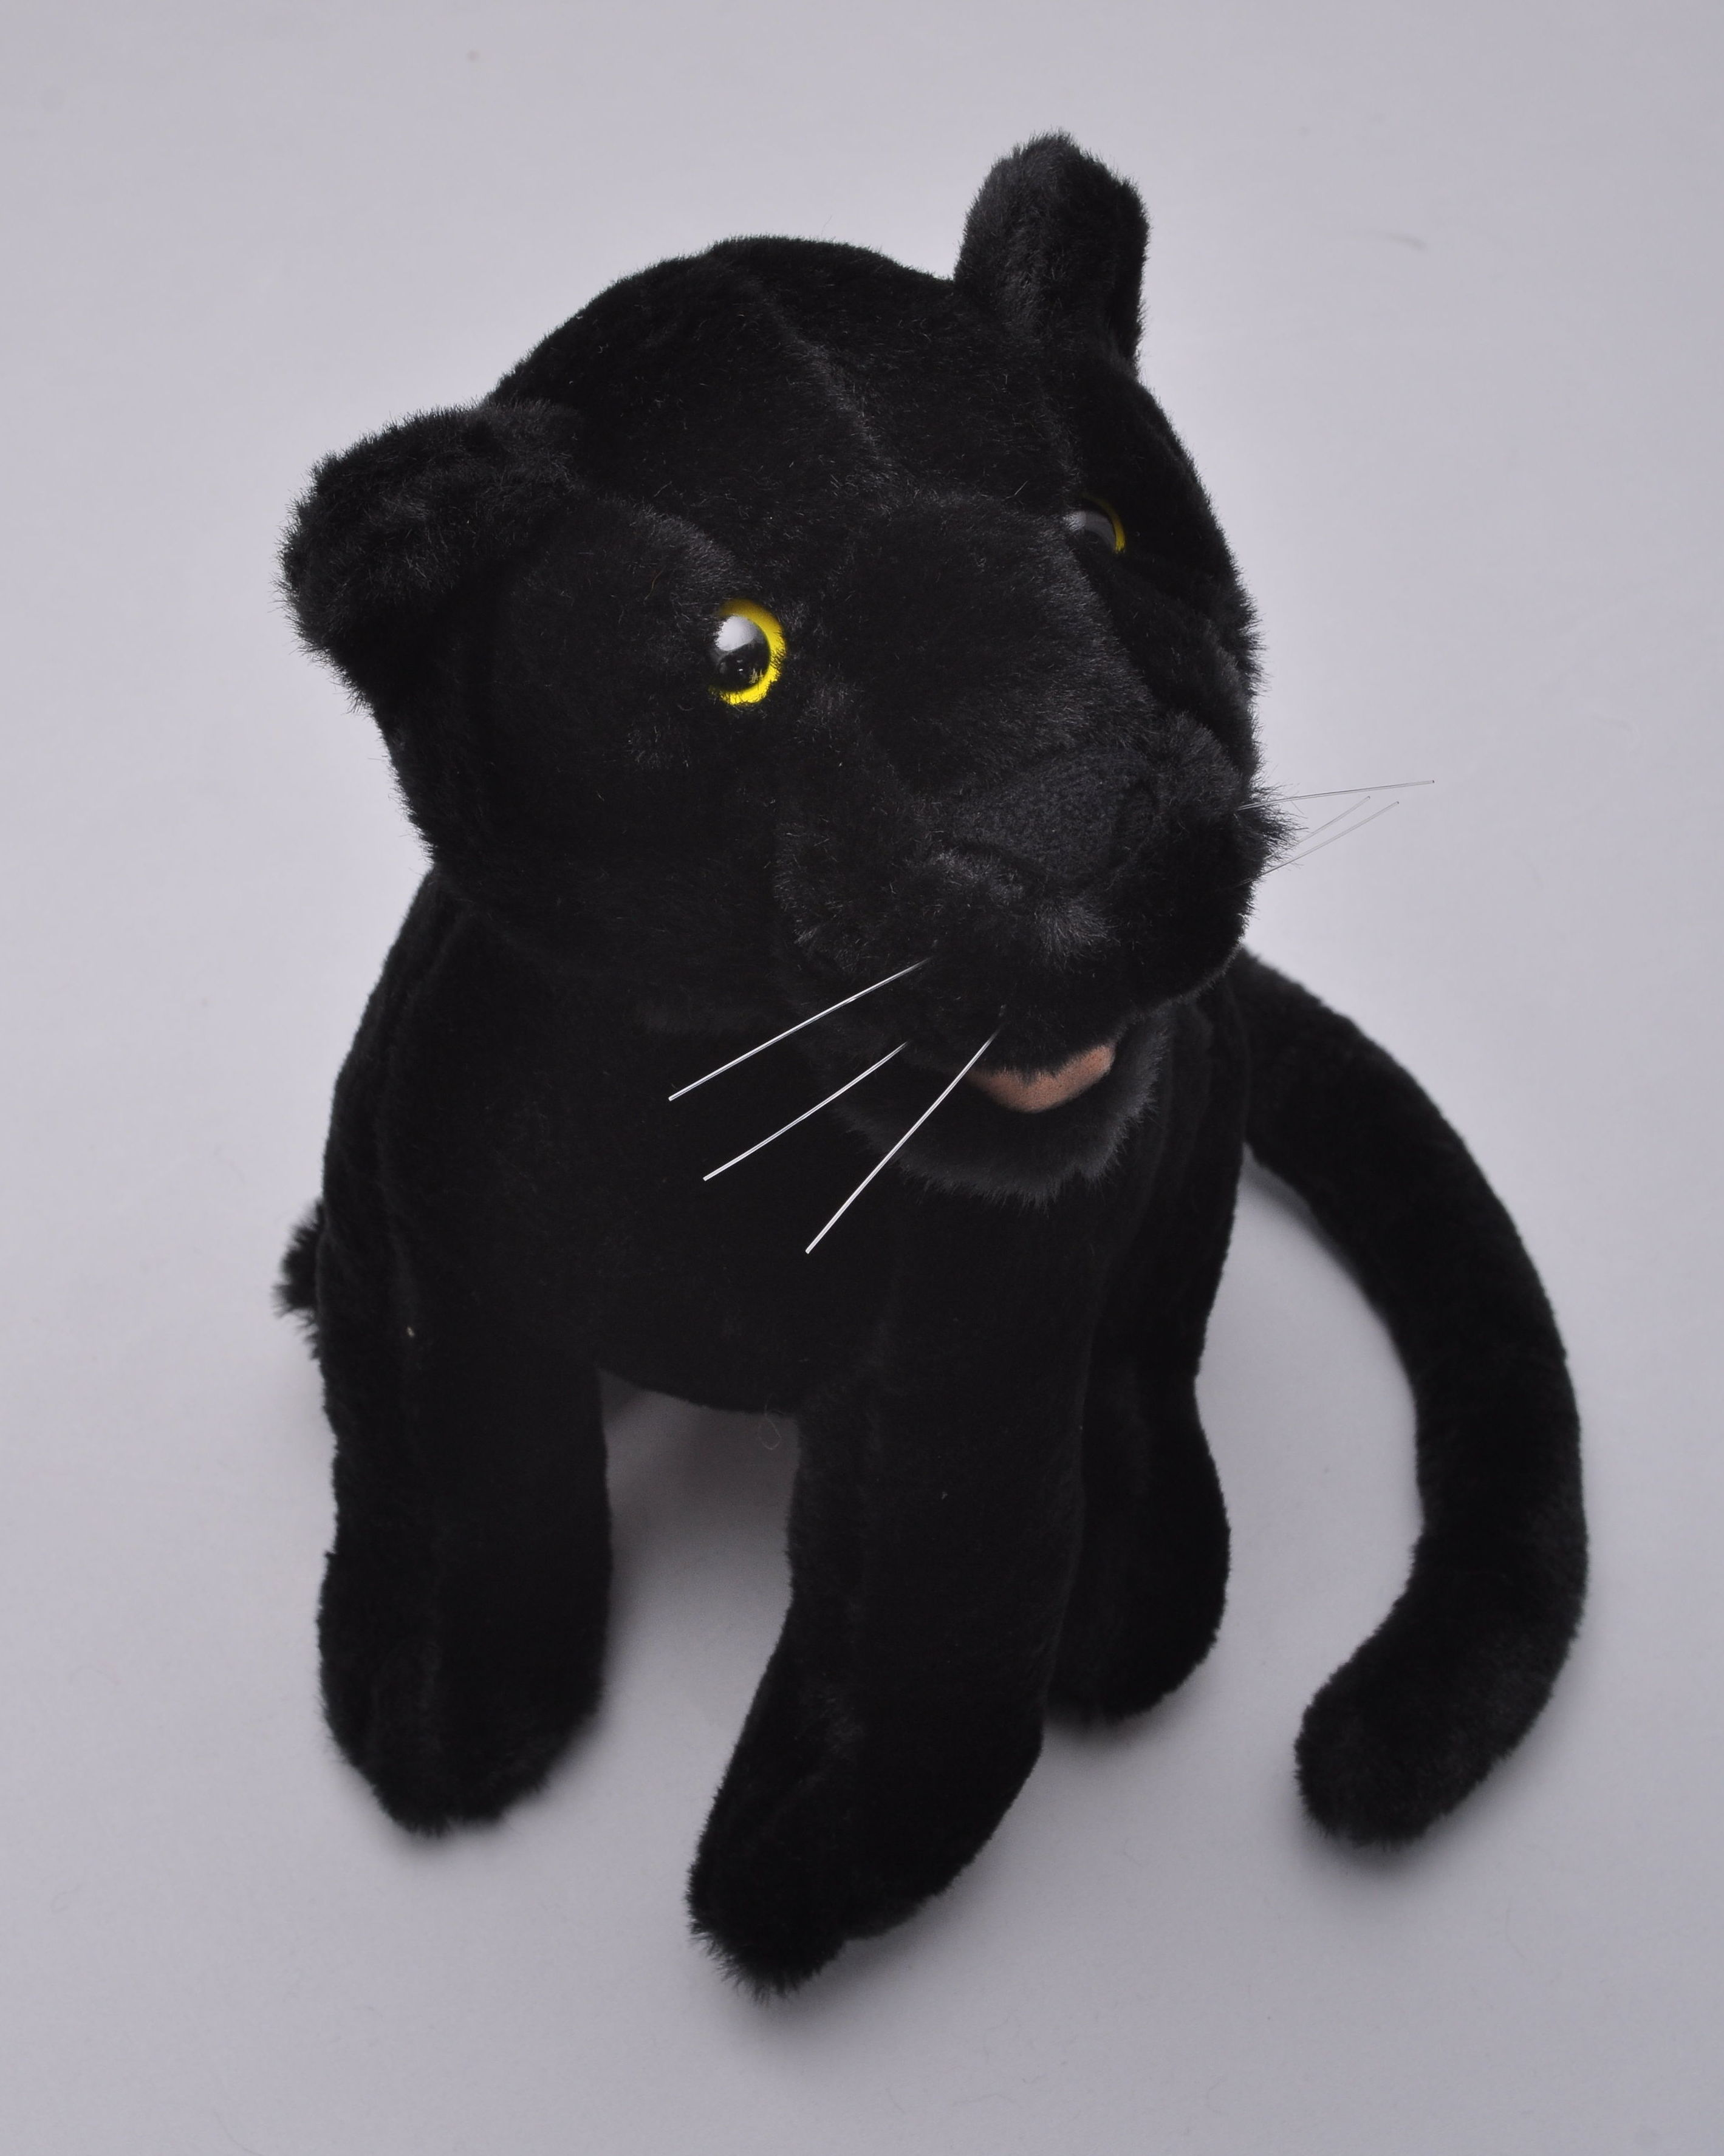 Pantera Negra Grande / Big Black Panther: Productos of BELLA TRADICION